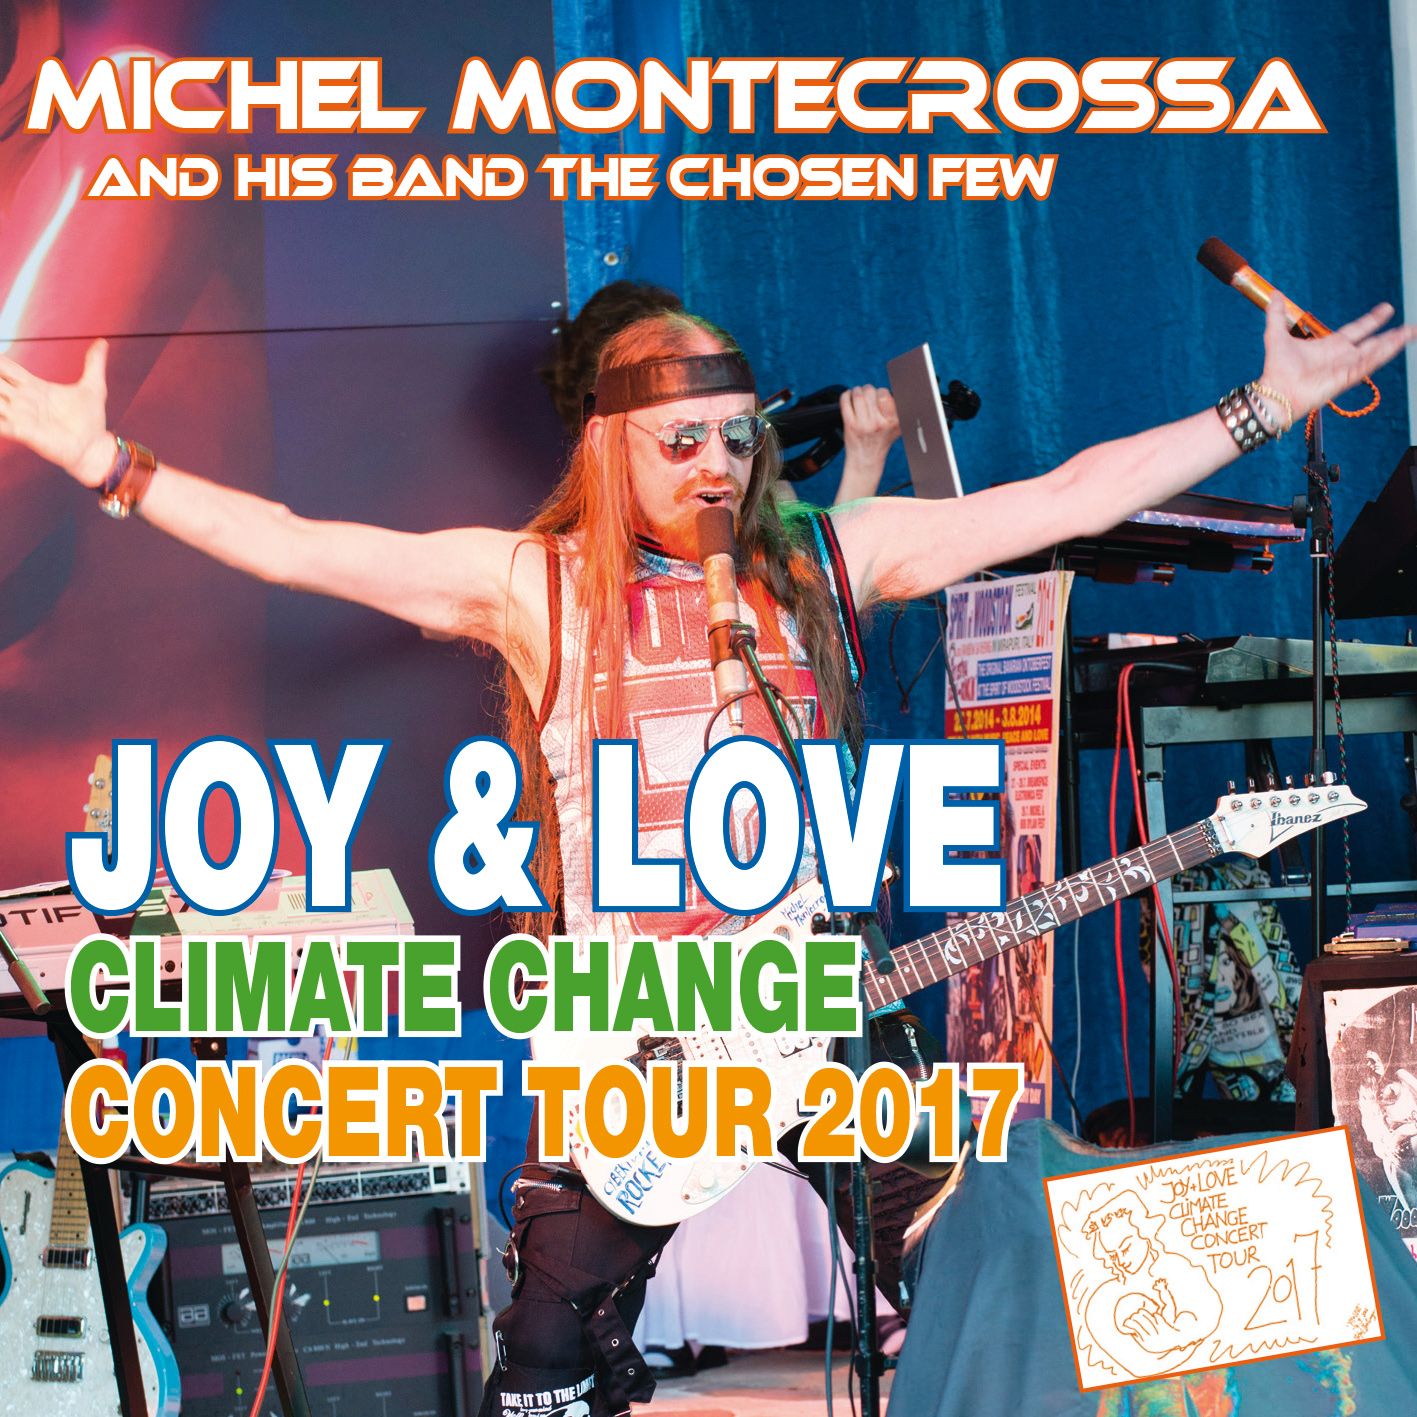 Joy & Love Climate Change Concert Tour 2017